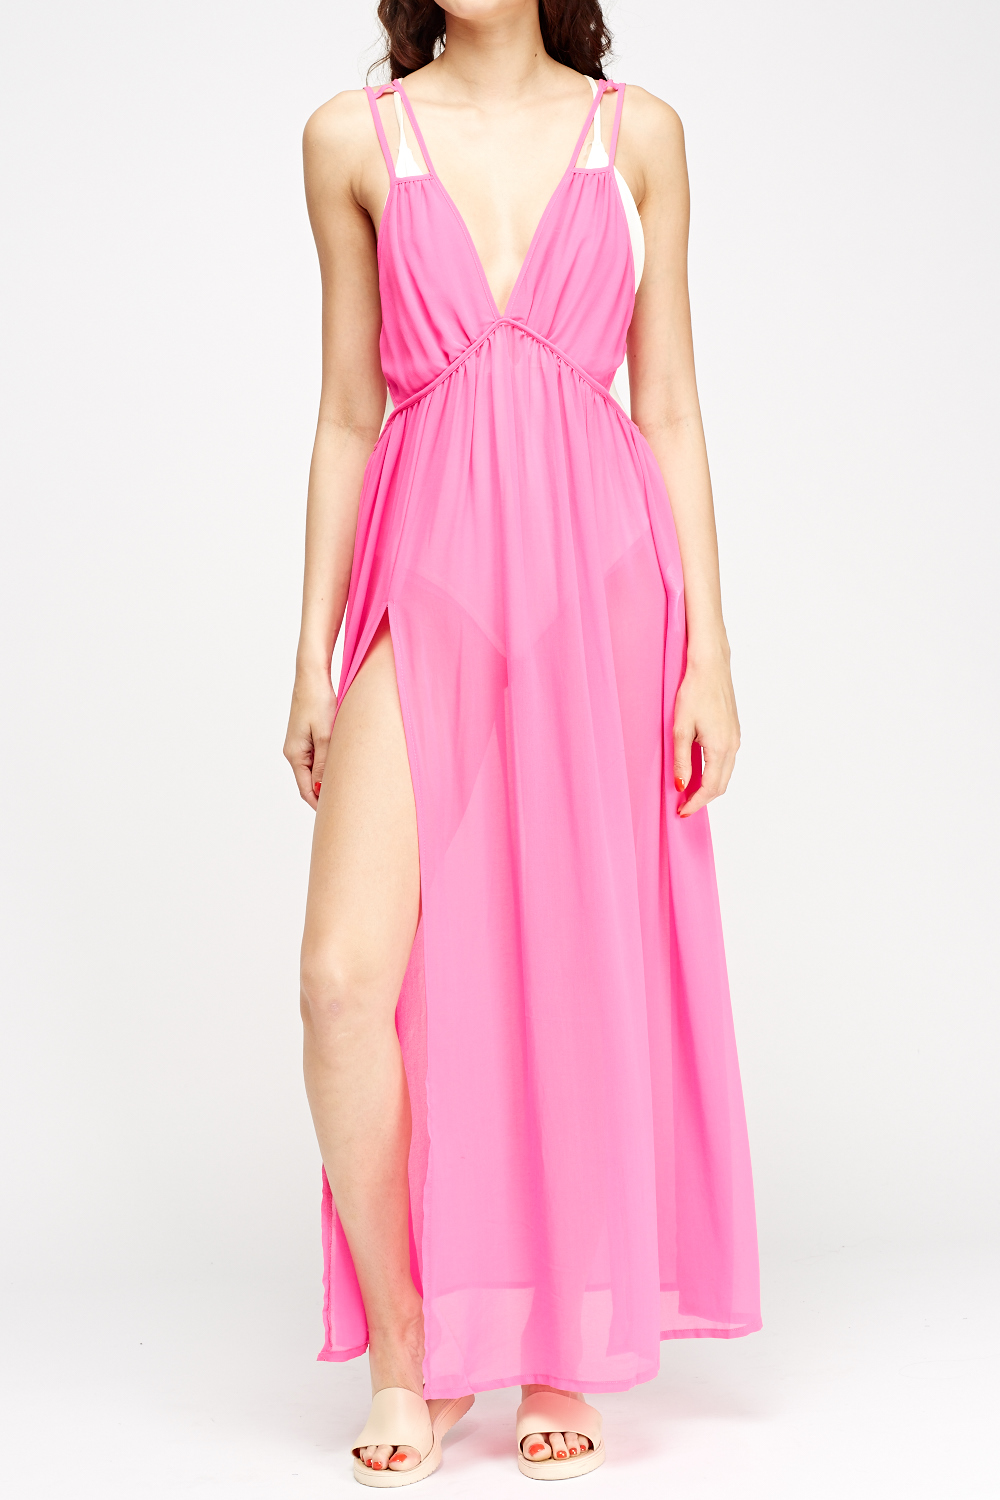 Hot Pink Sheer Cover Up Dress Just 163 2